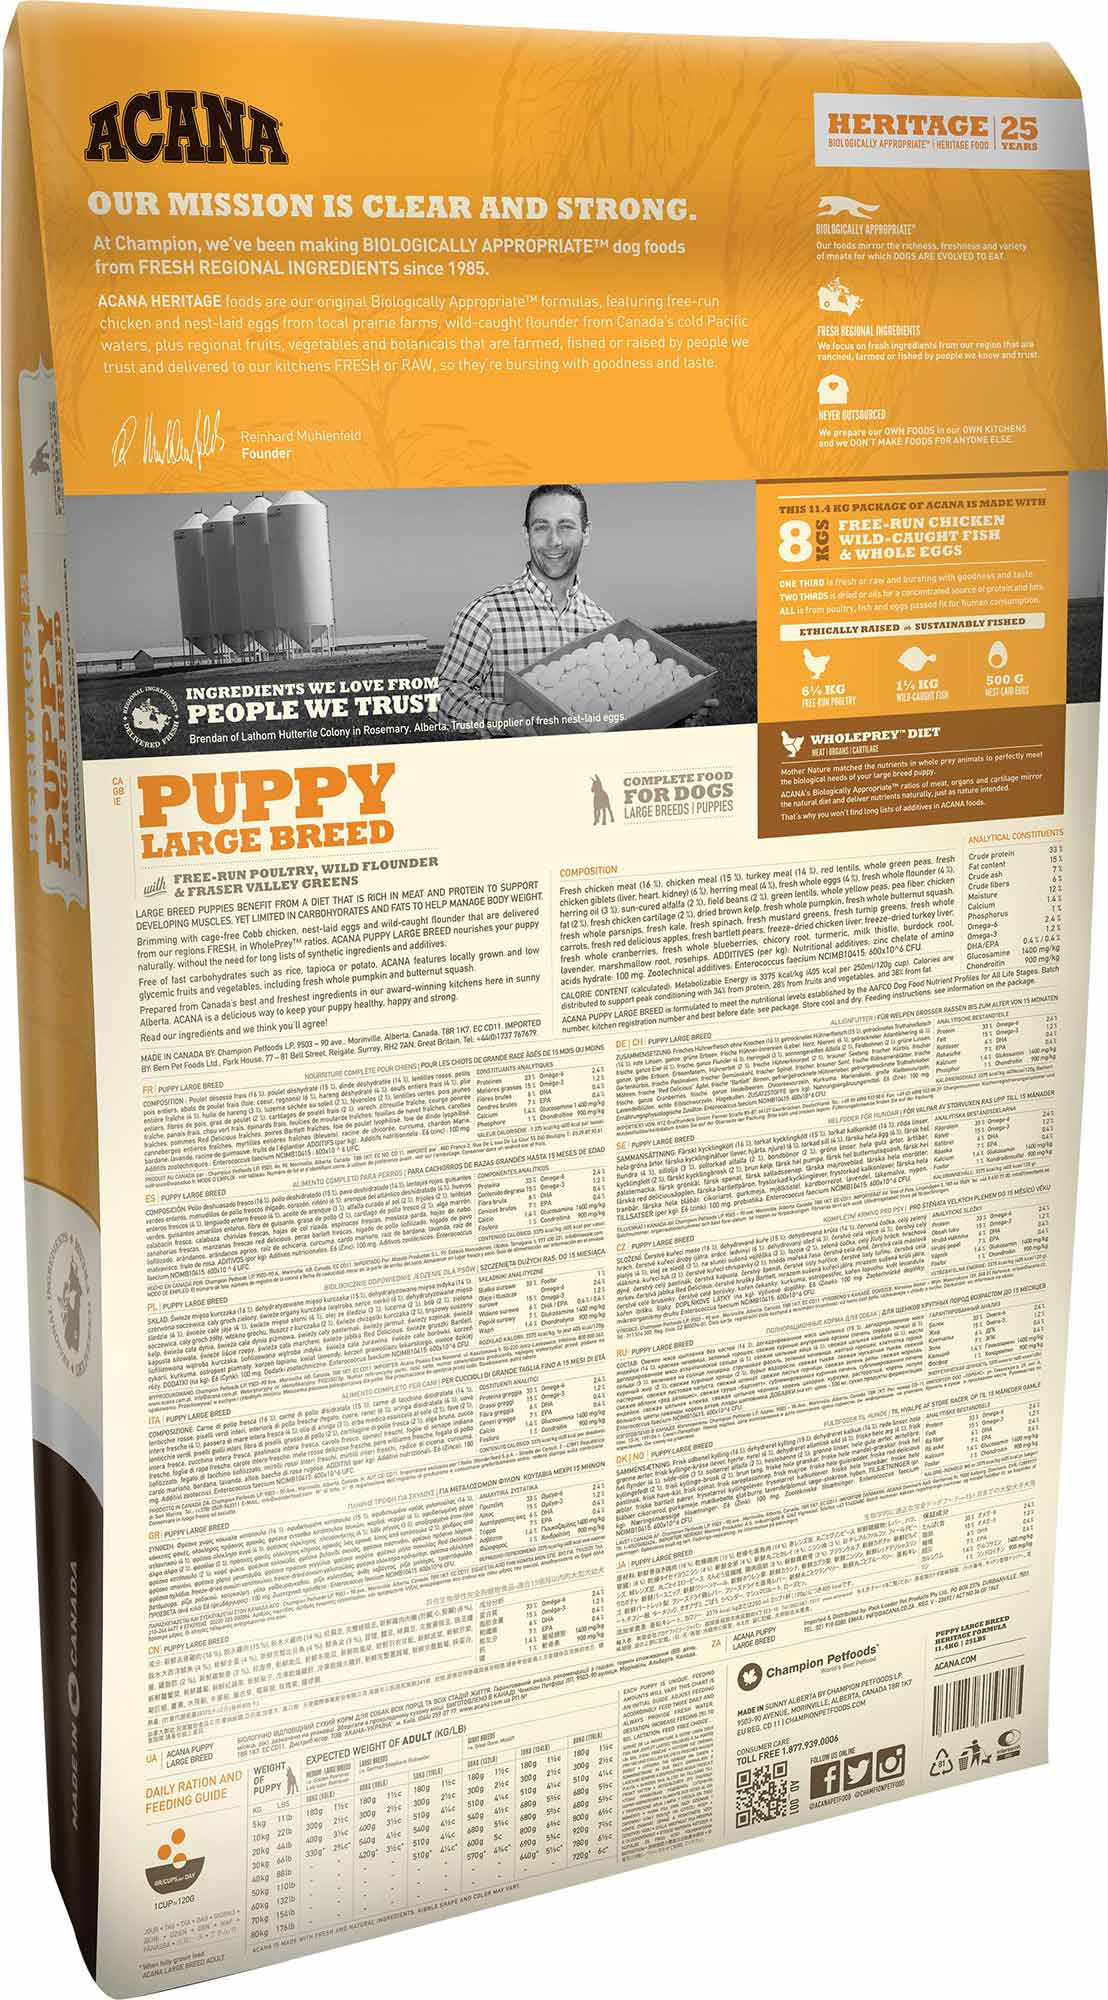 Puppy Large Breed • ACANA Pet Foods